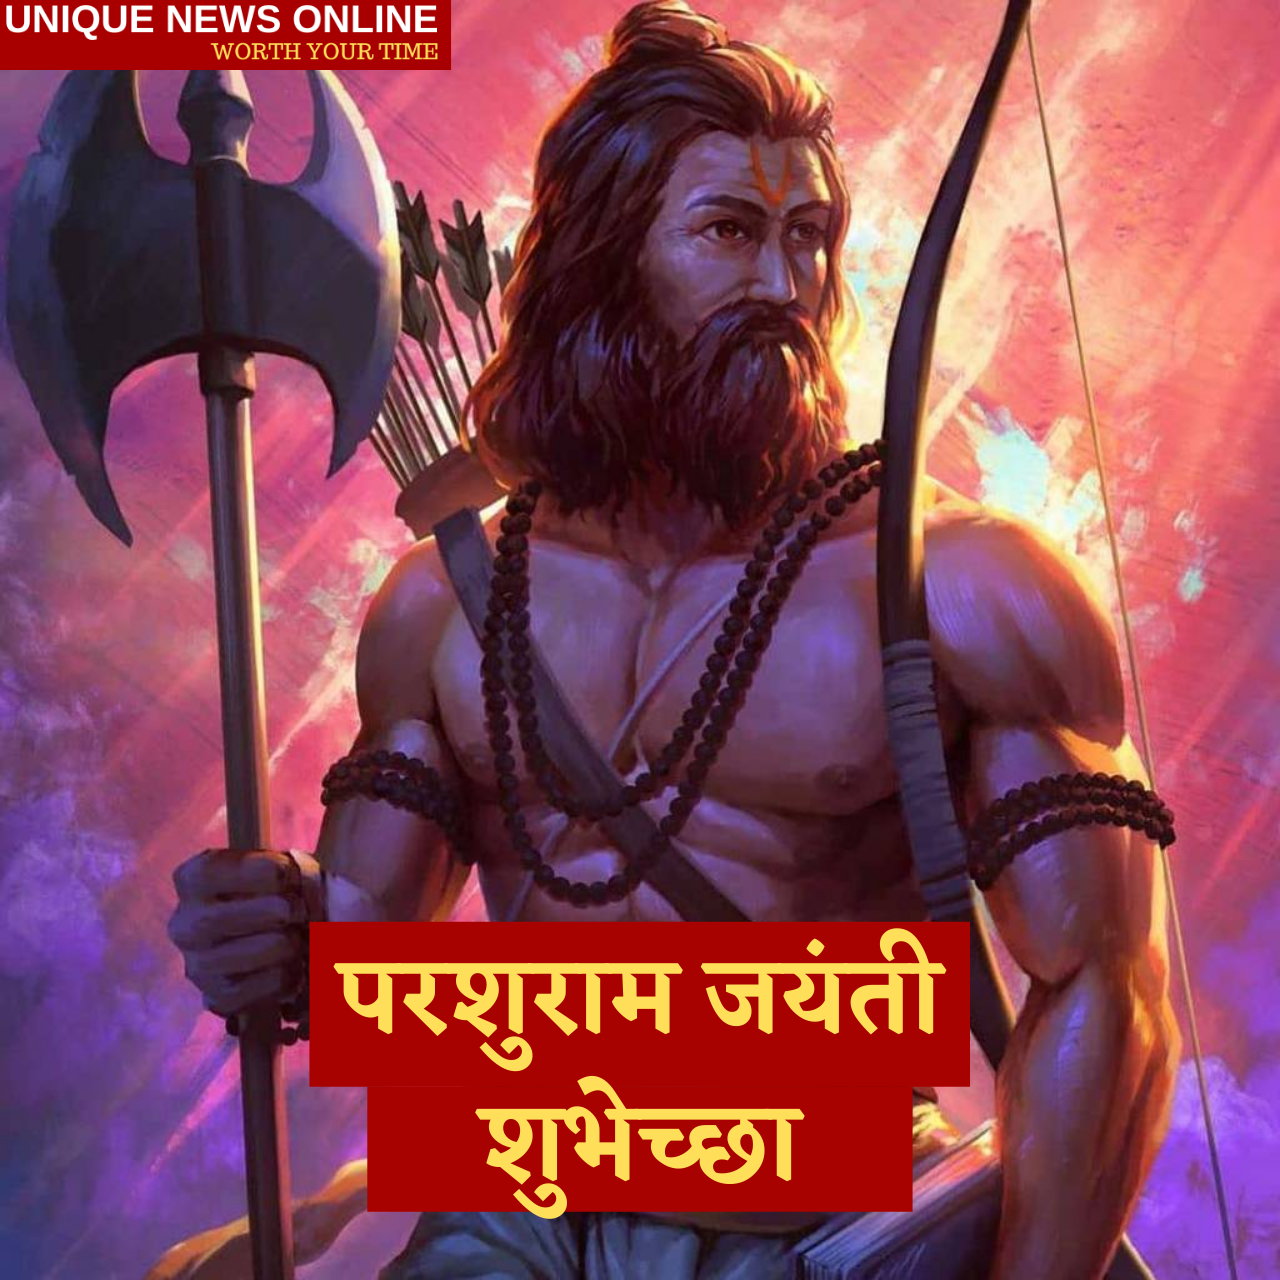 Parshuram Jayanti 2021 Wishes in Marathi, Images, Banner, WhatsApp Status, Greetings, Quotes, and SMS to share